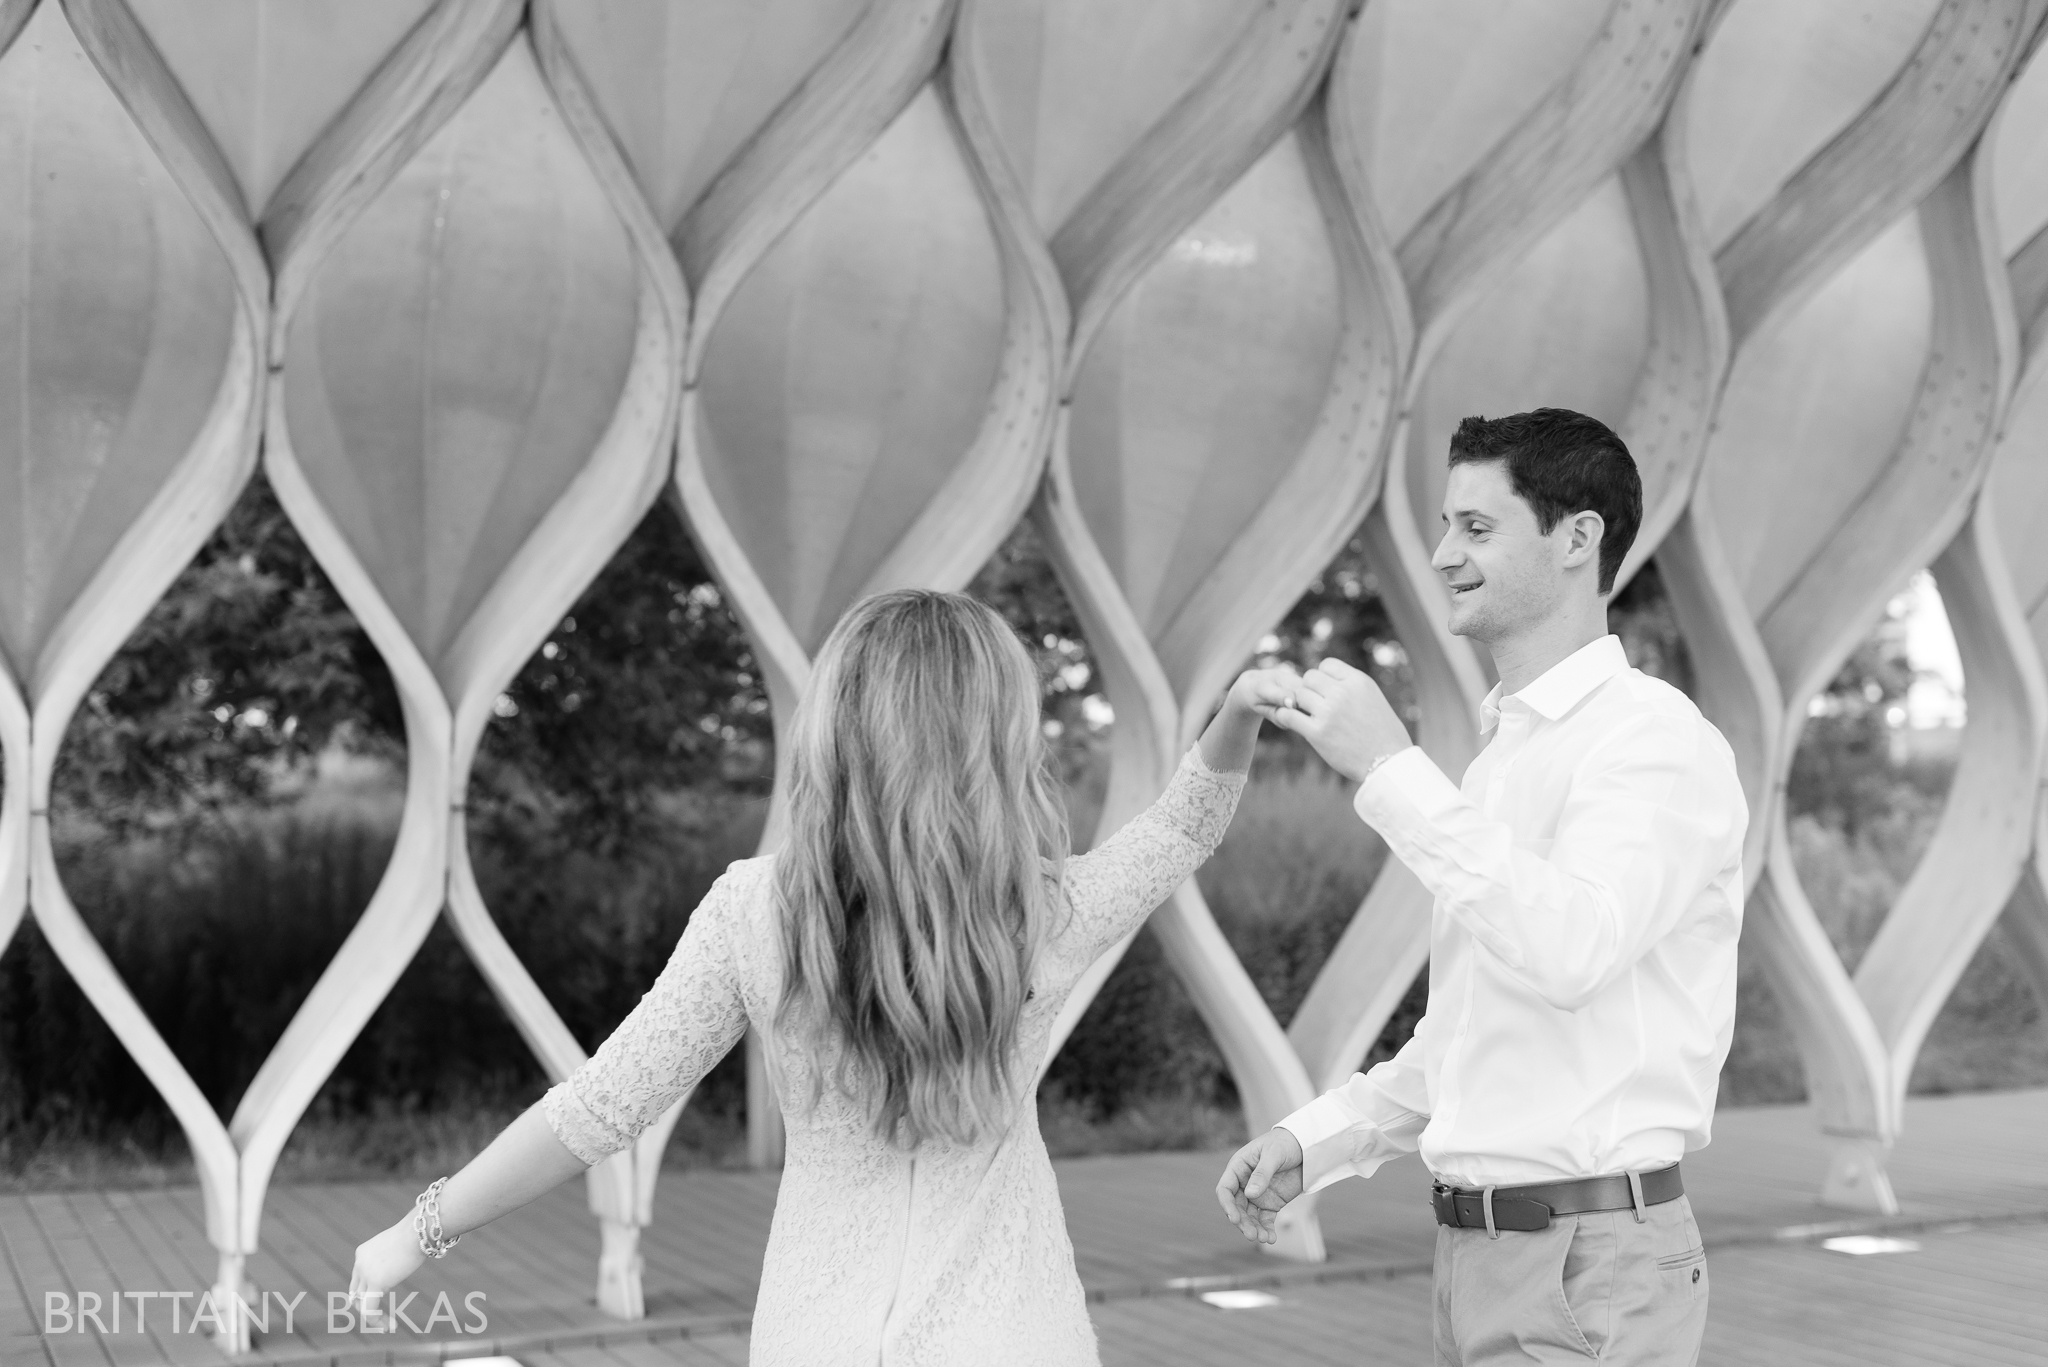 lincoln-park-chicago-engagement-photos-brittany-bekas-photography_0019